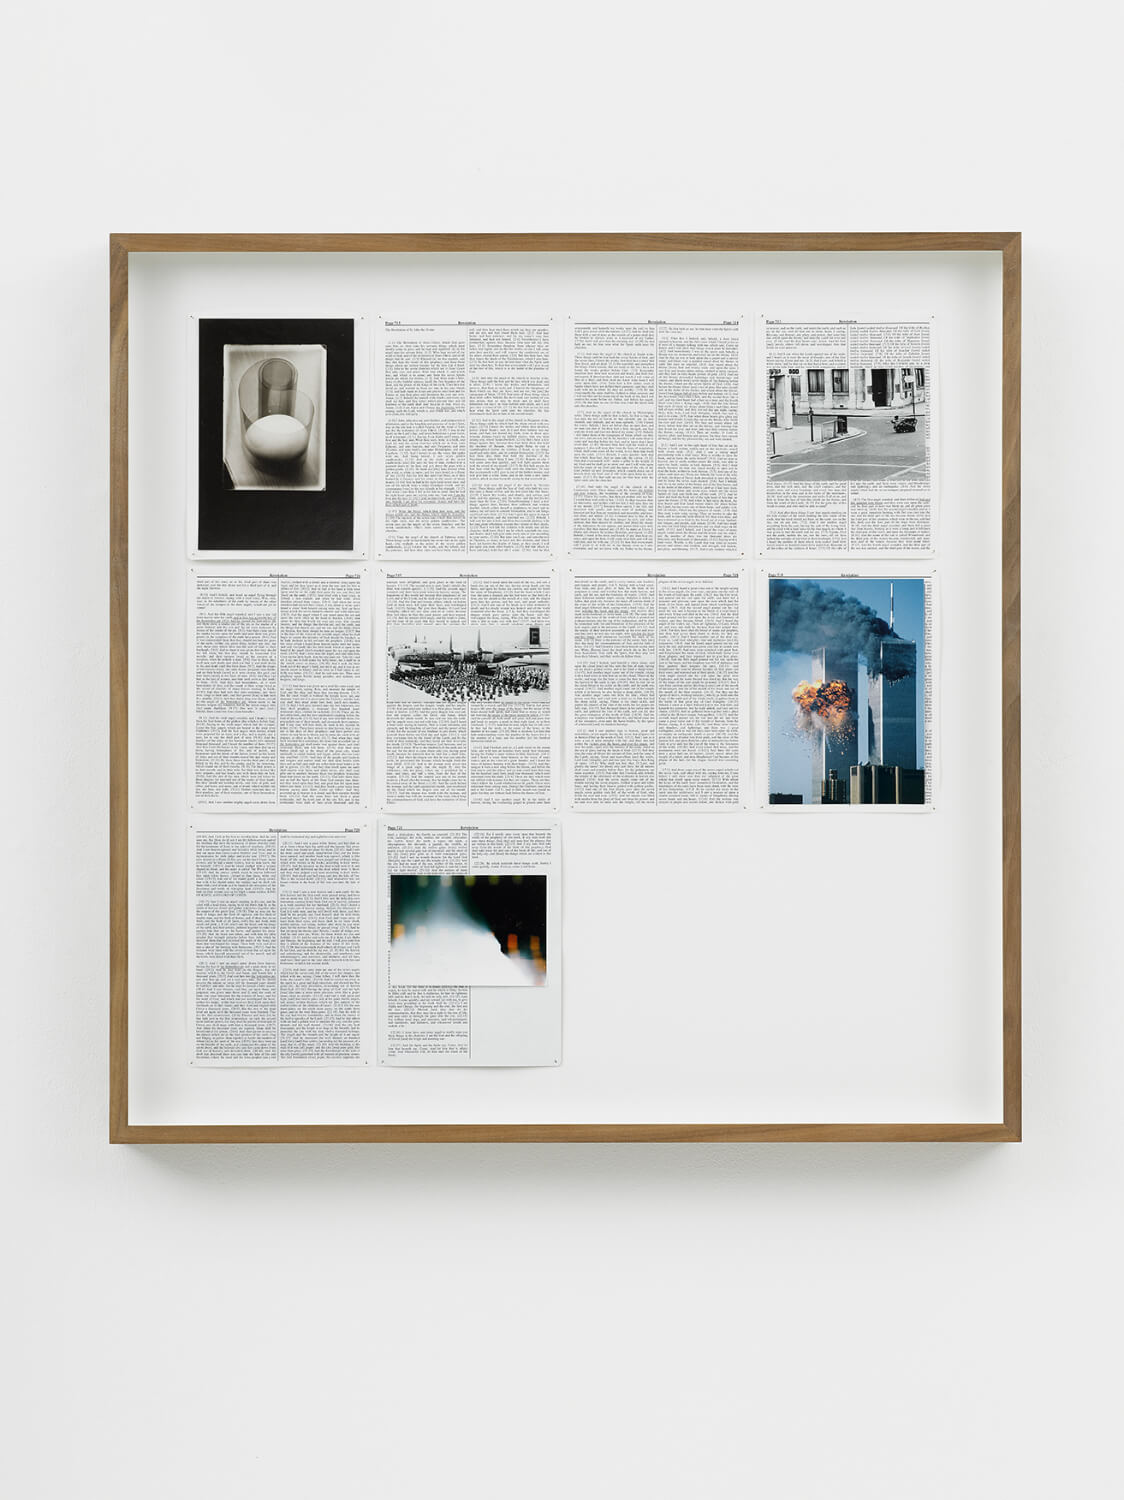 Revelations, Divine Violence, 2013, King James Bible, Hahnemühle print, brass pins, 788mm x 789mm, Image courtesy of Lisson Gallery, London